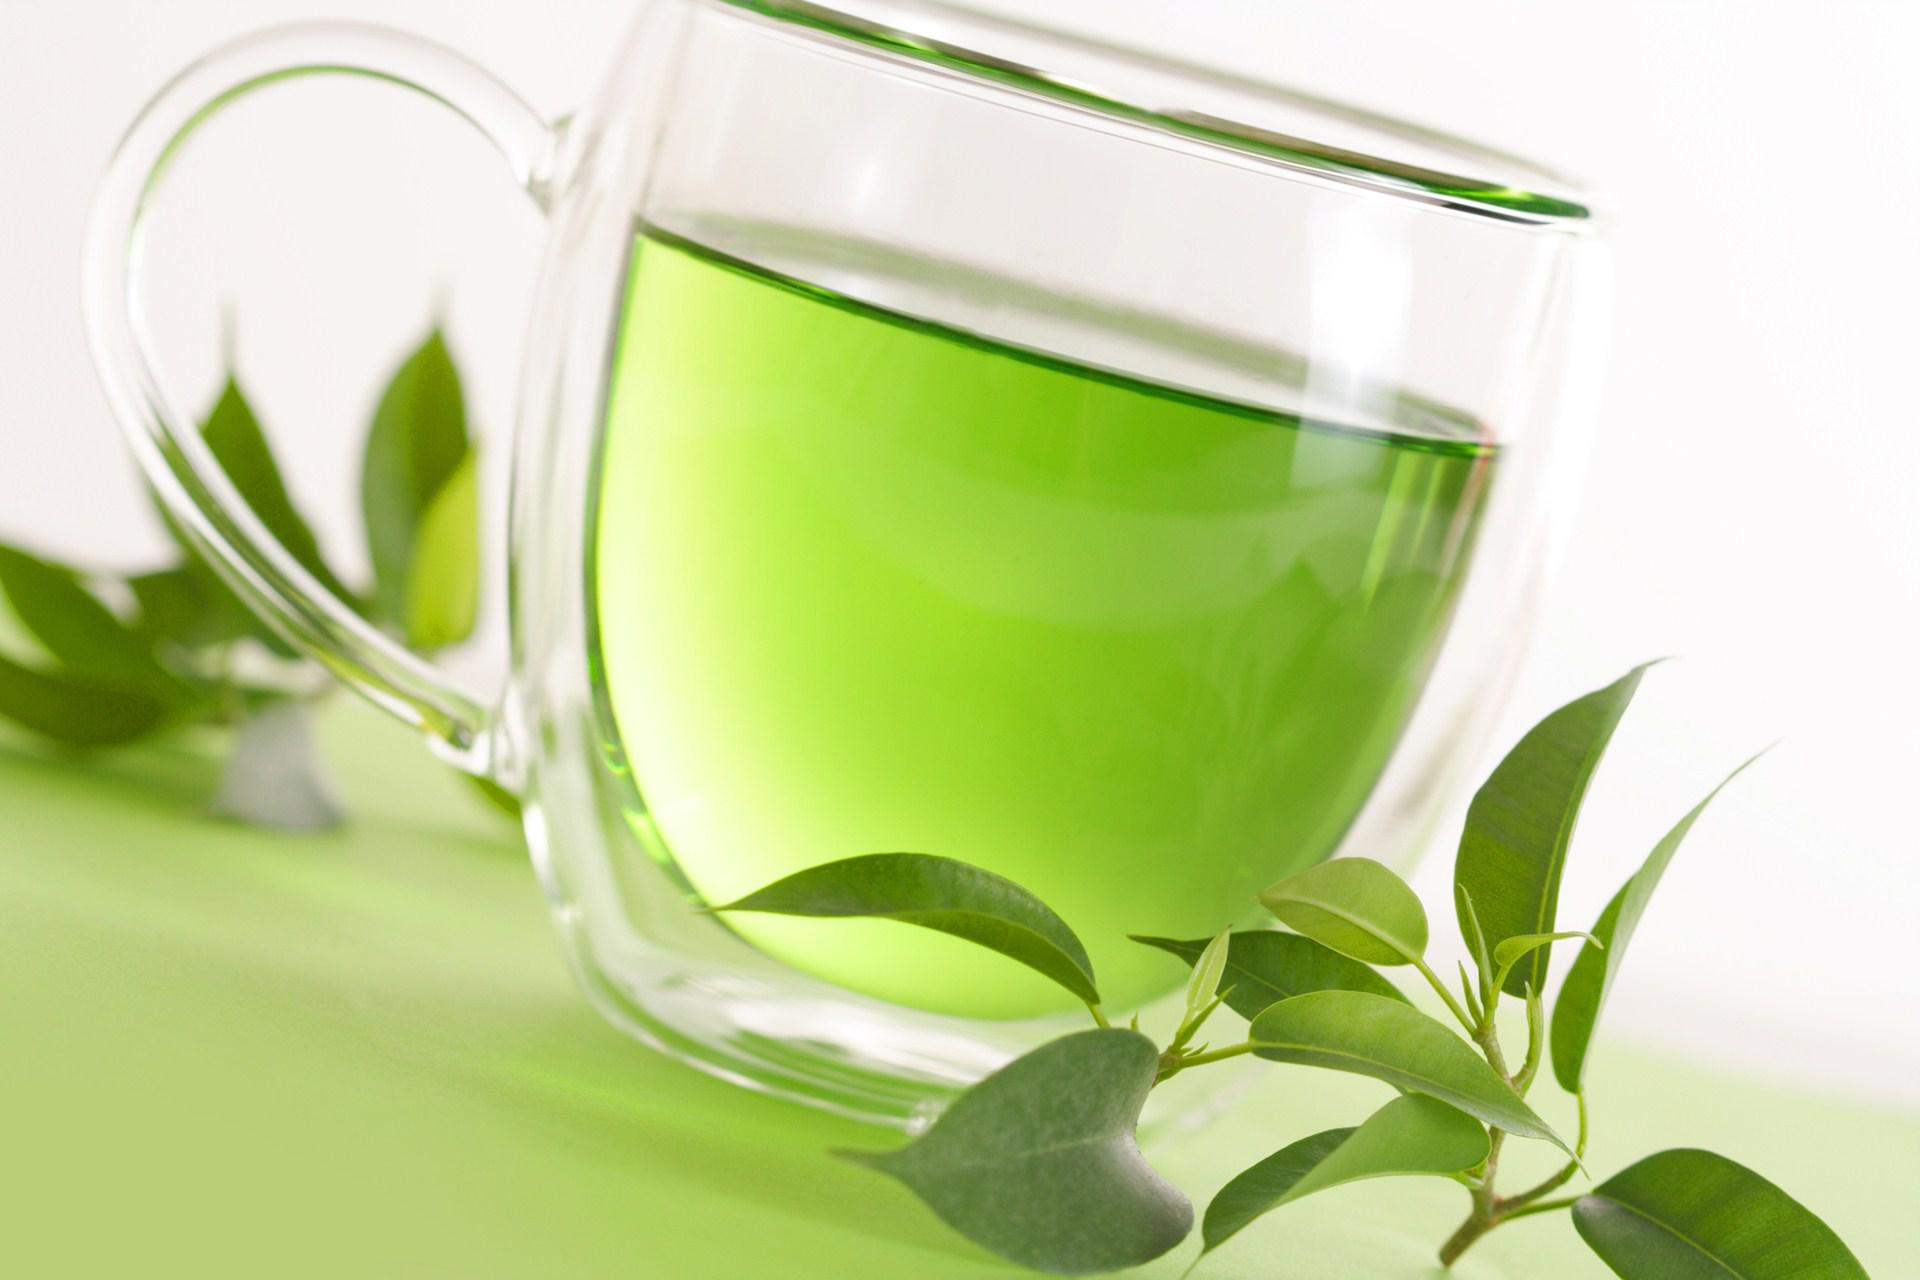 Green Tea Extract Helps You Lose Weight